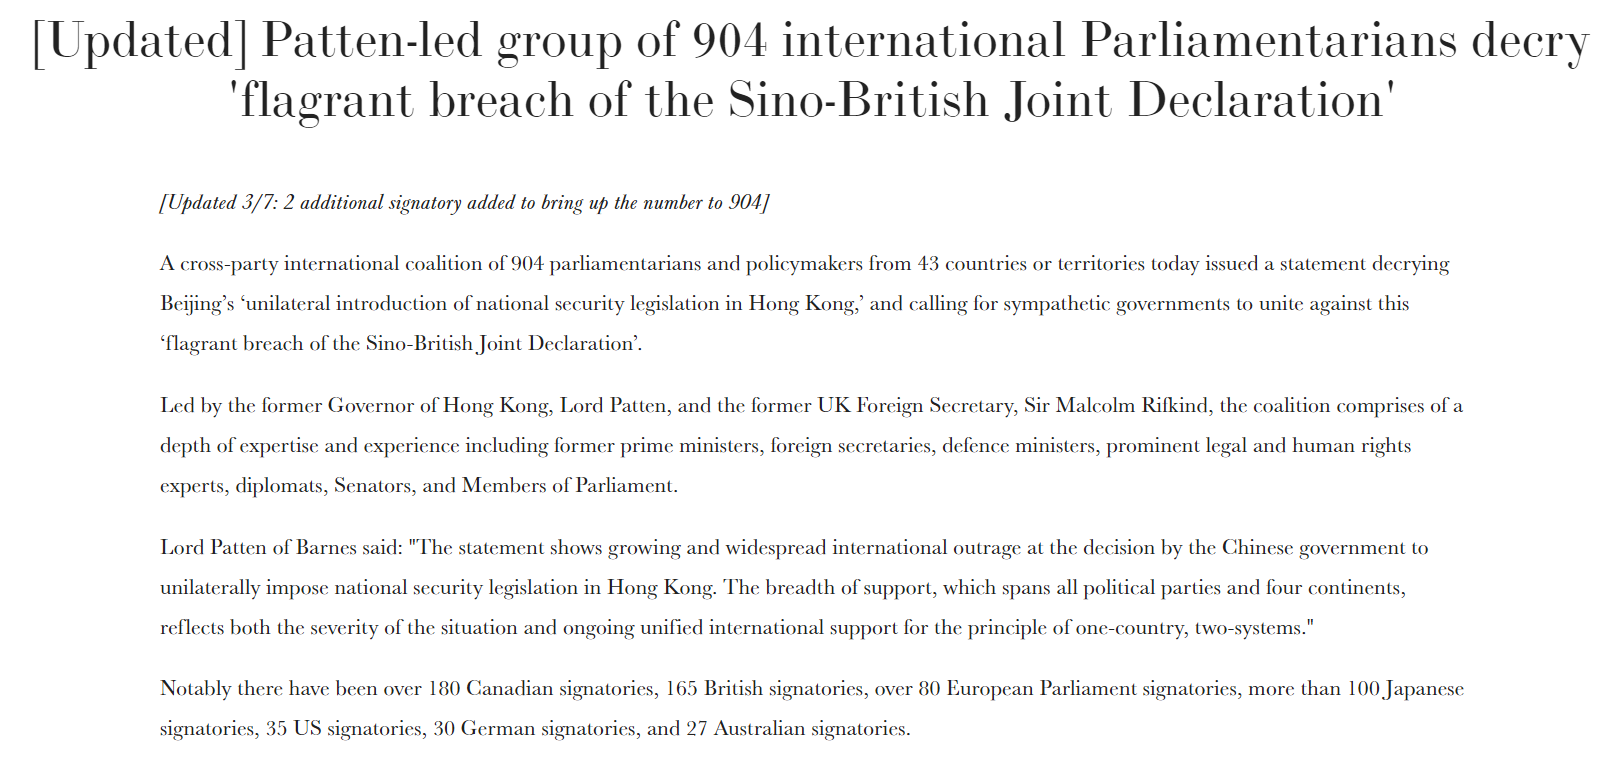 Joint Statement on flagrant breach of the Sino-British Joint Declaration